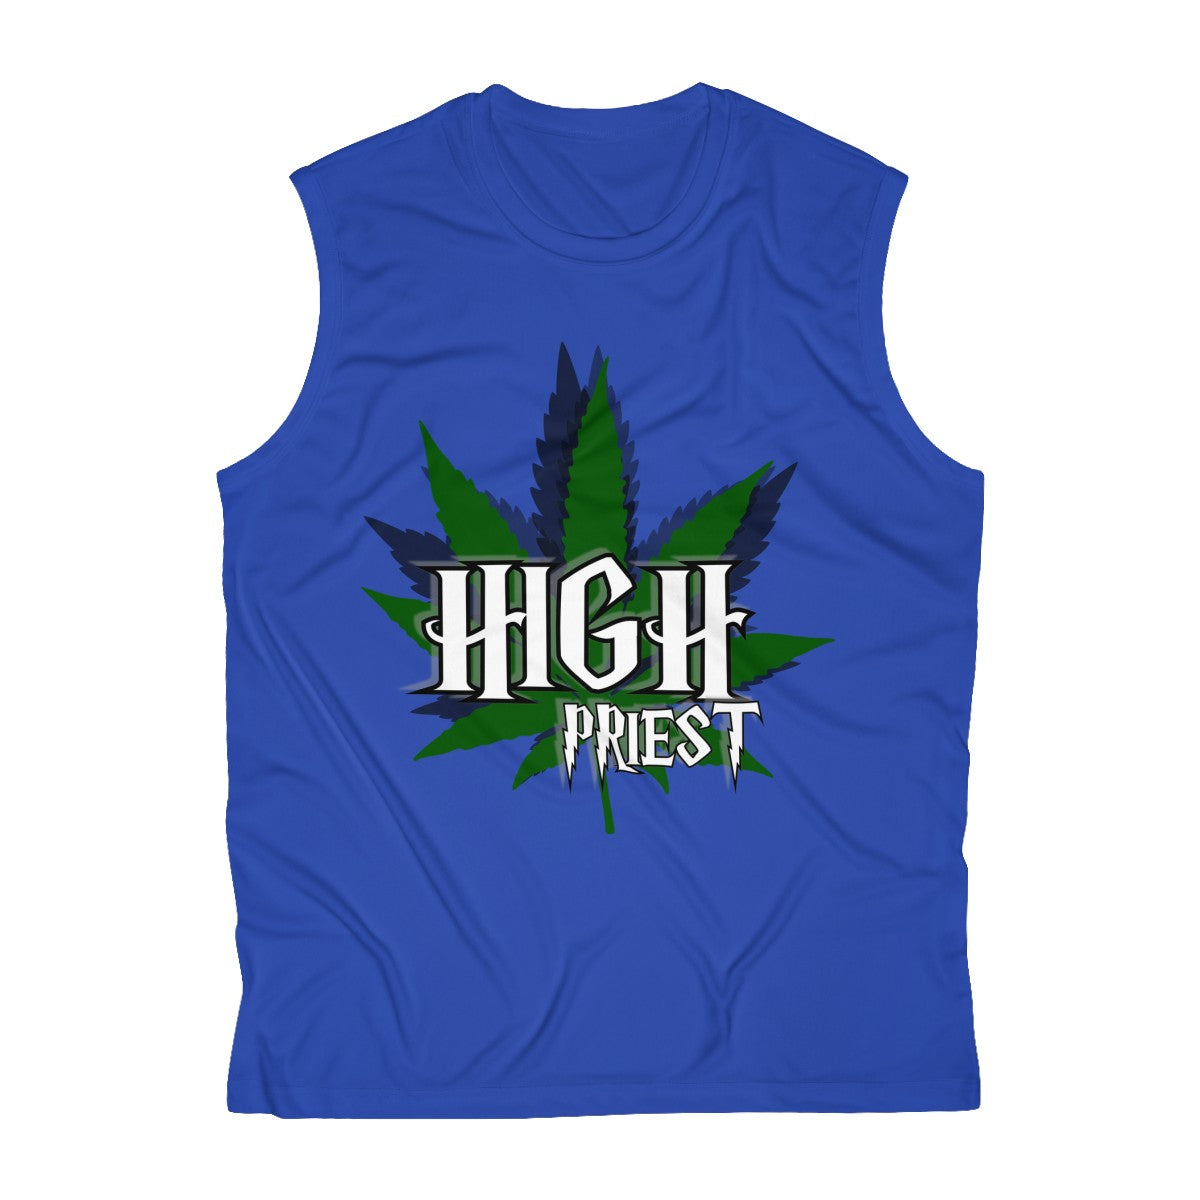 Men's Sleeveless Performance Tee - High Priest